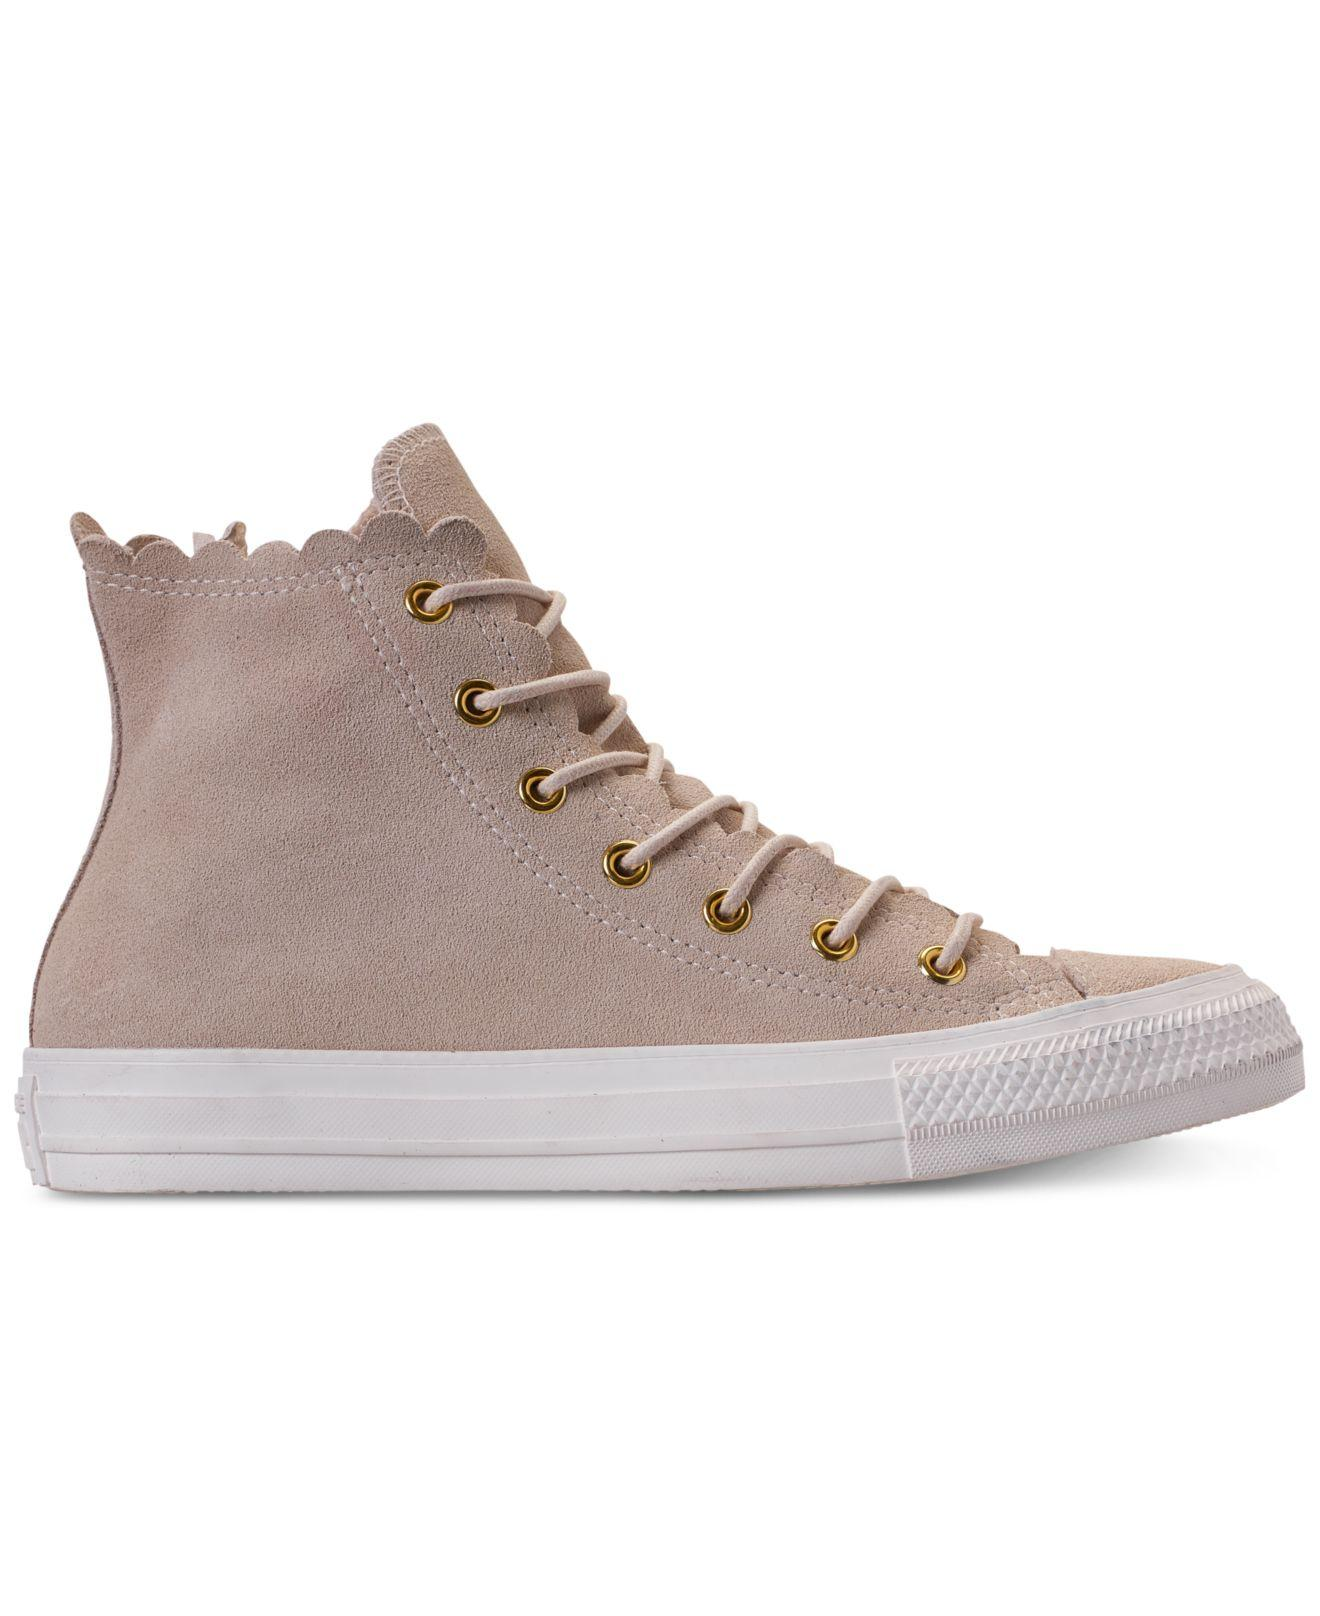 926418ba0814 Lyst - Converse Chuck Taylor All Star Scallop Natural - Save 28%